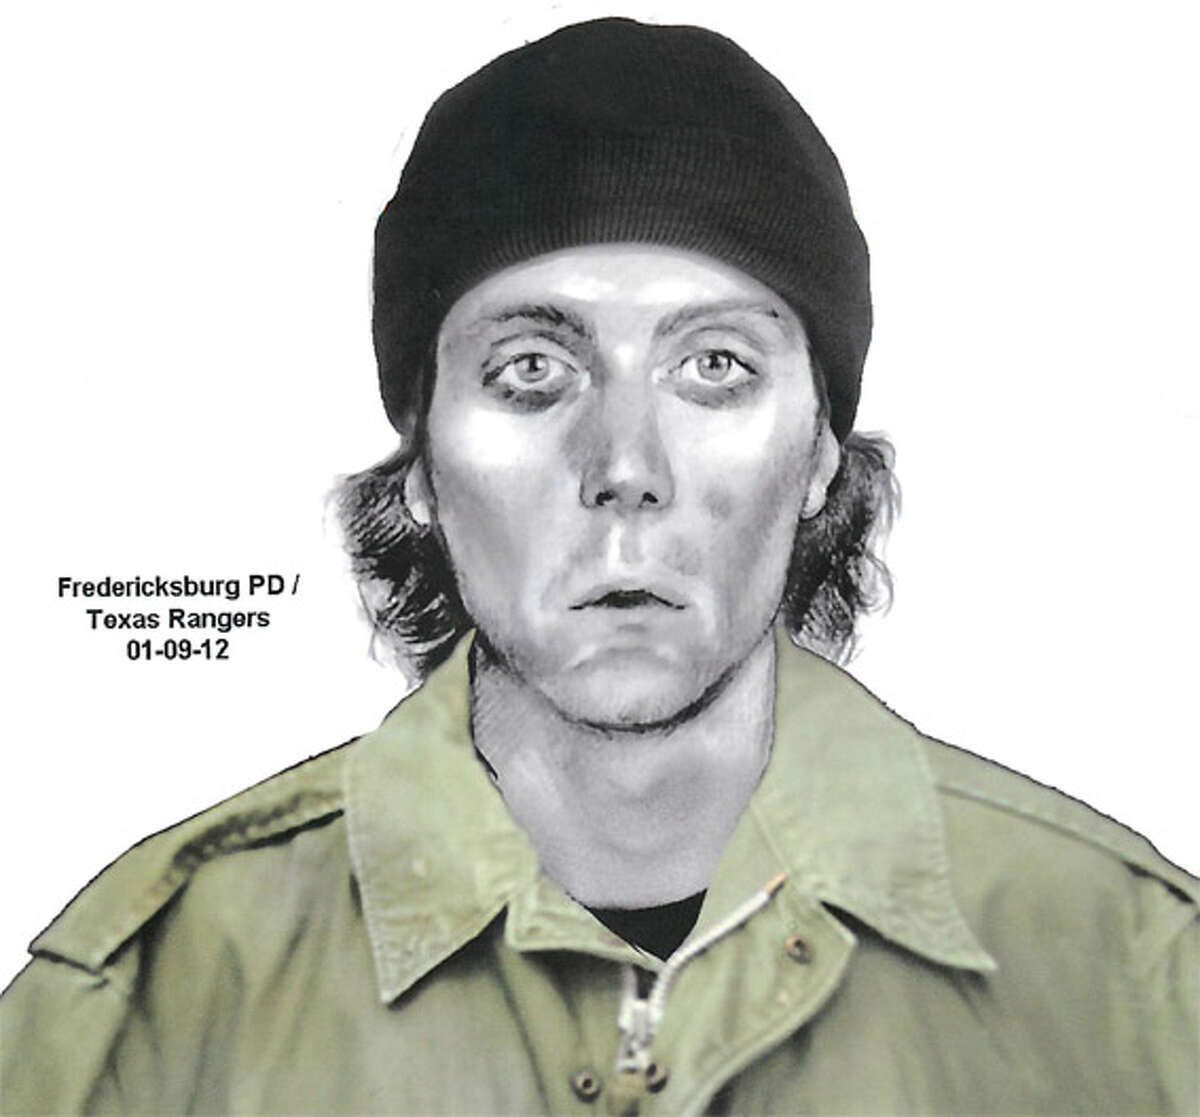 Fredericksburg police are searching for a man who robbed a church secretary of two breakfast tacos and $26 from her purse at knifepoint before fleeing the sanctuary Monday. A police sketch of the suspect depicts a man dressed in knit cap and green jacket.